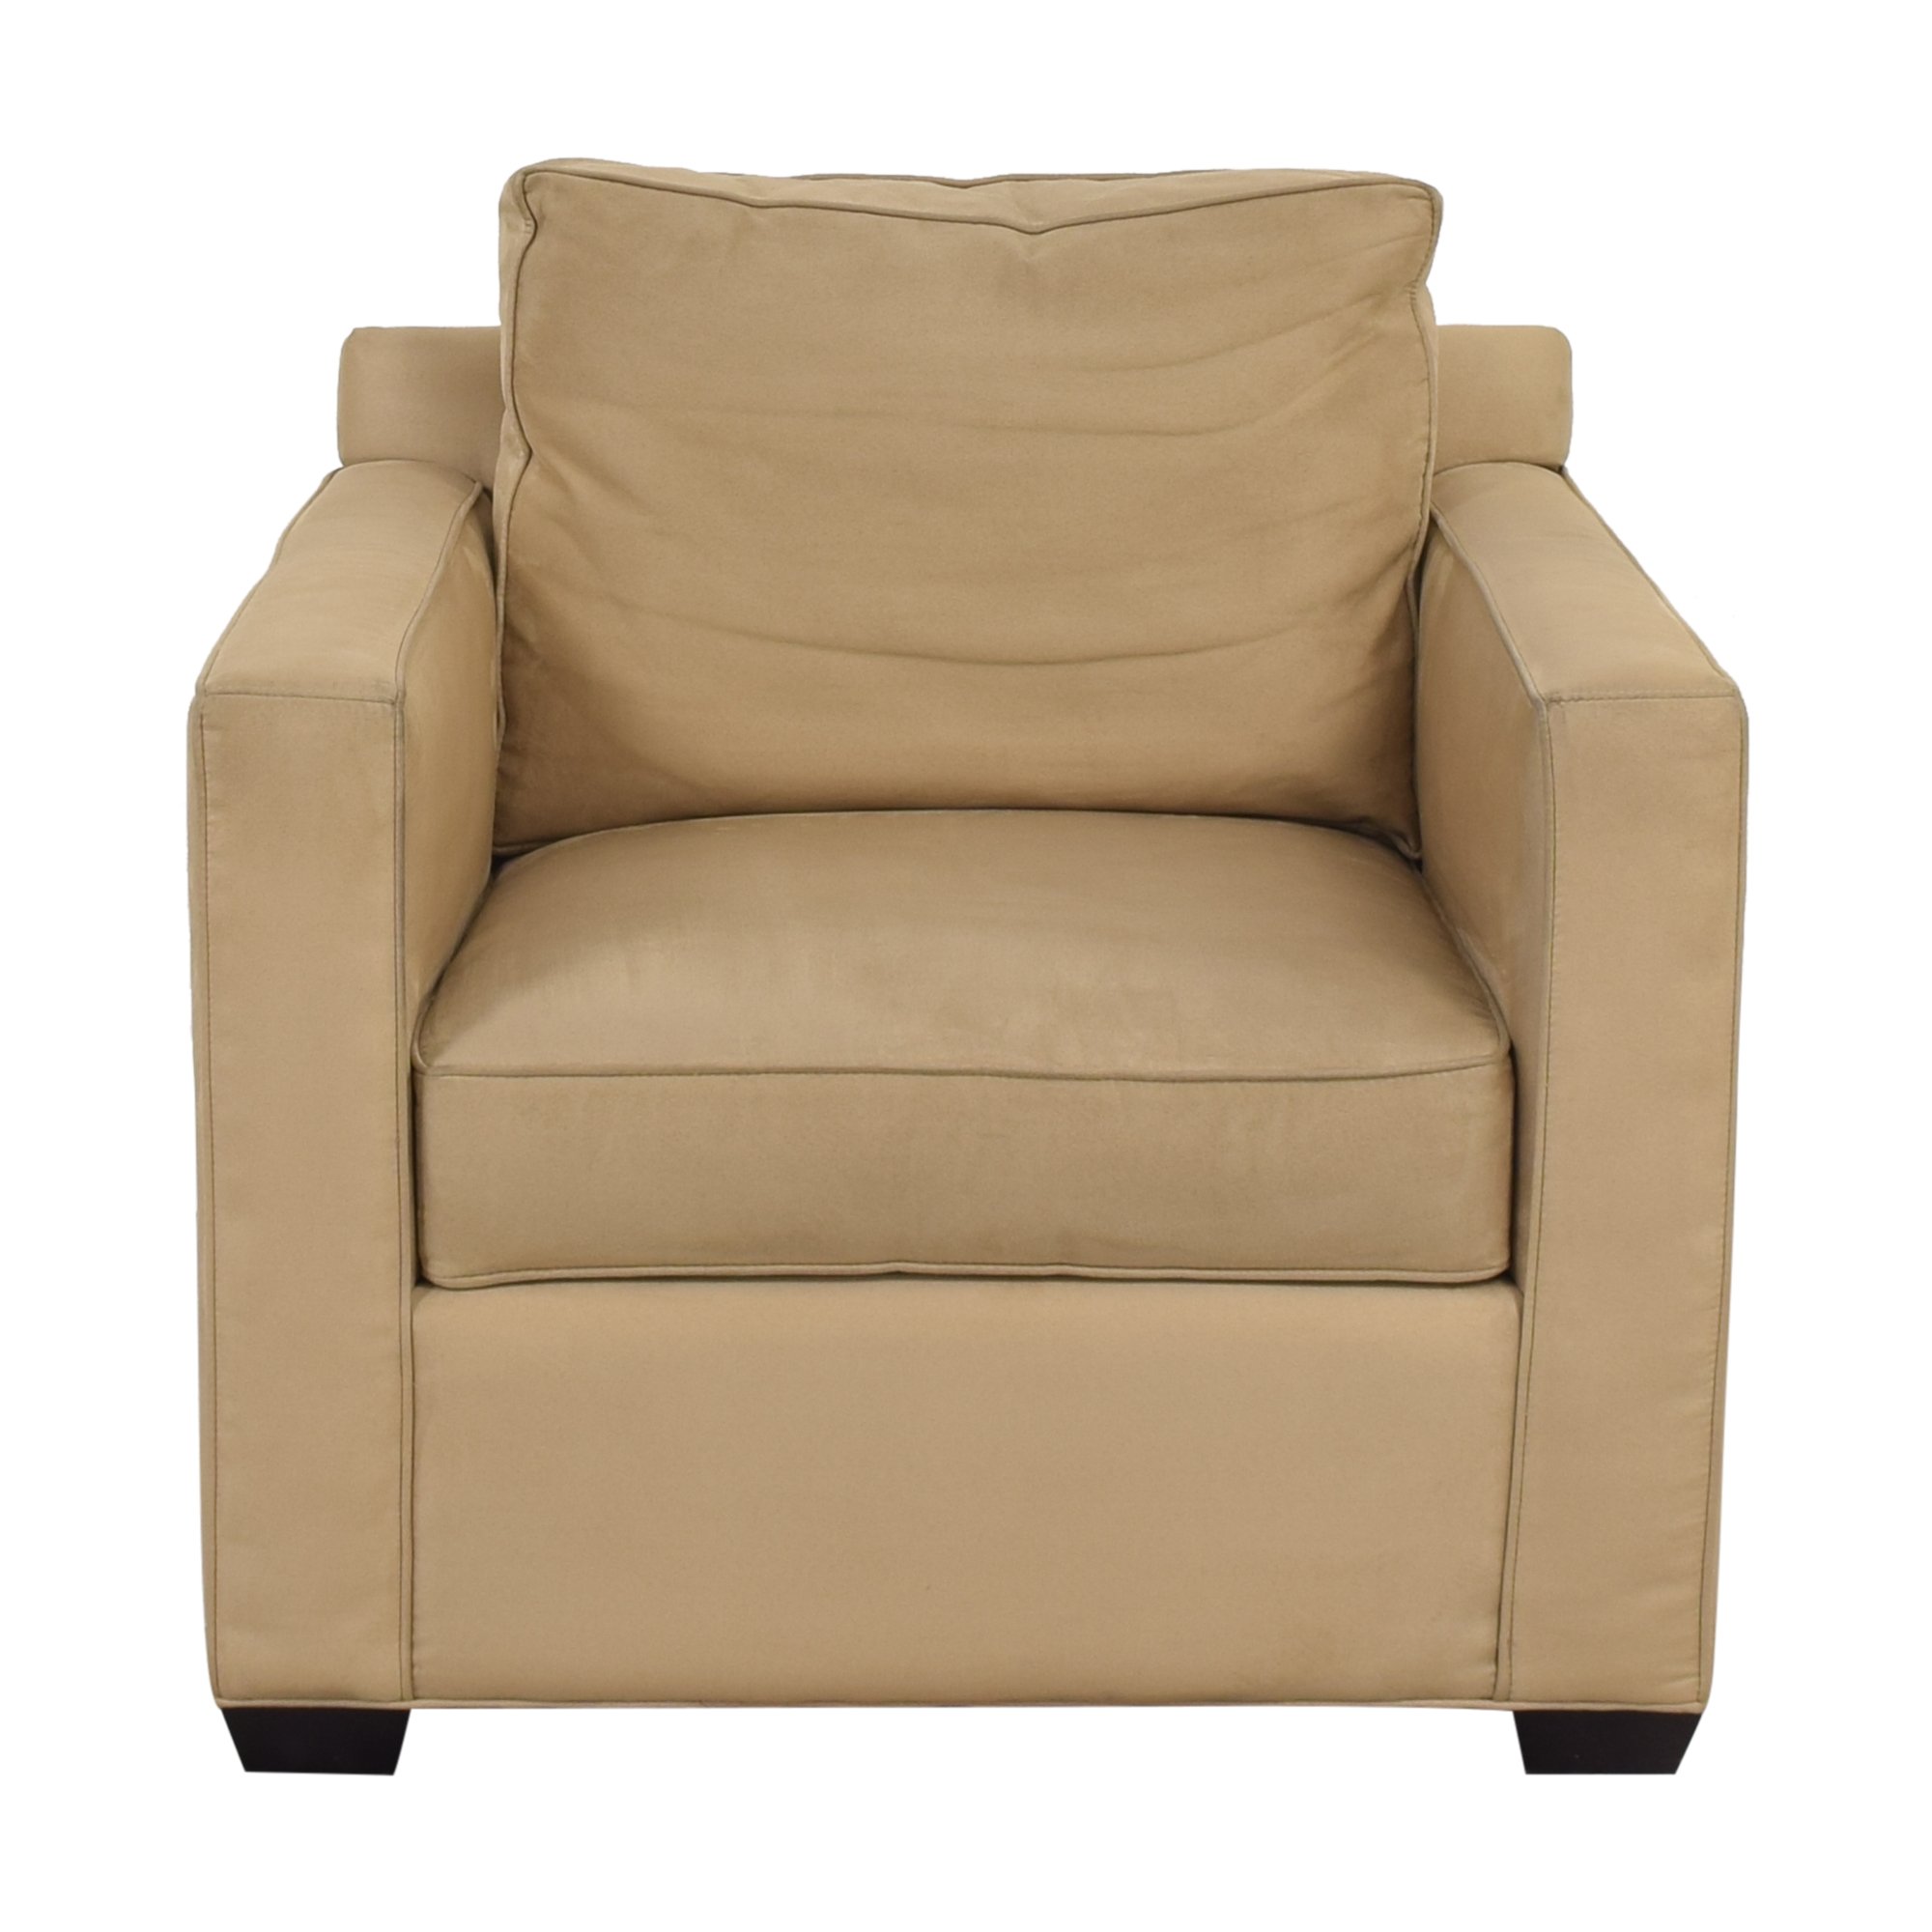 Crate & Barrel Crate & Barrel Davis Beige Accent Chair coupon